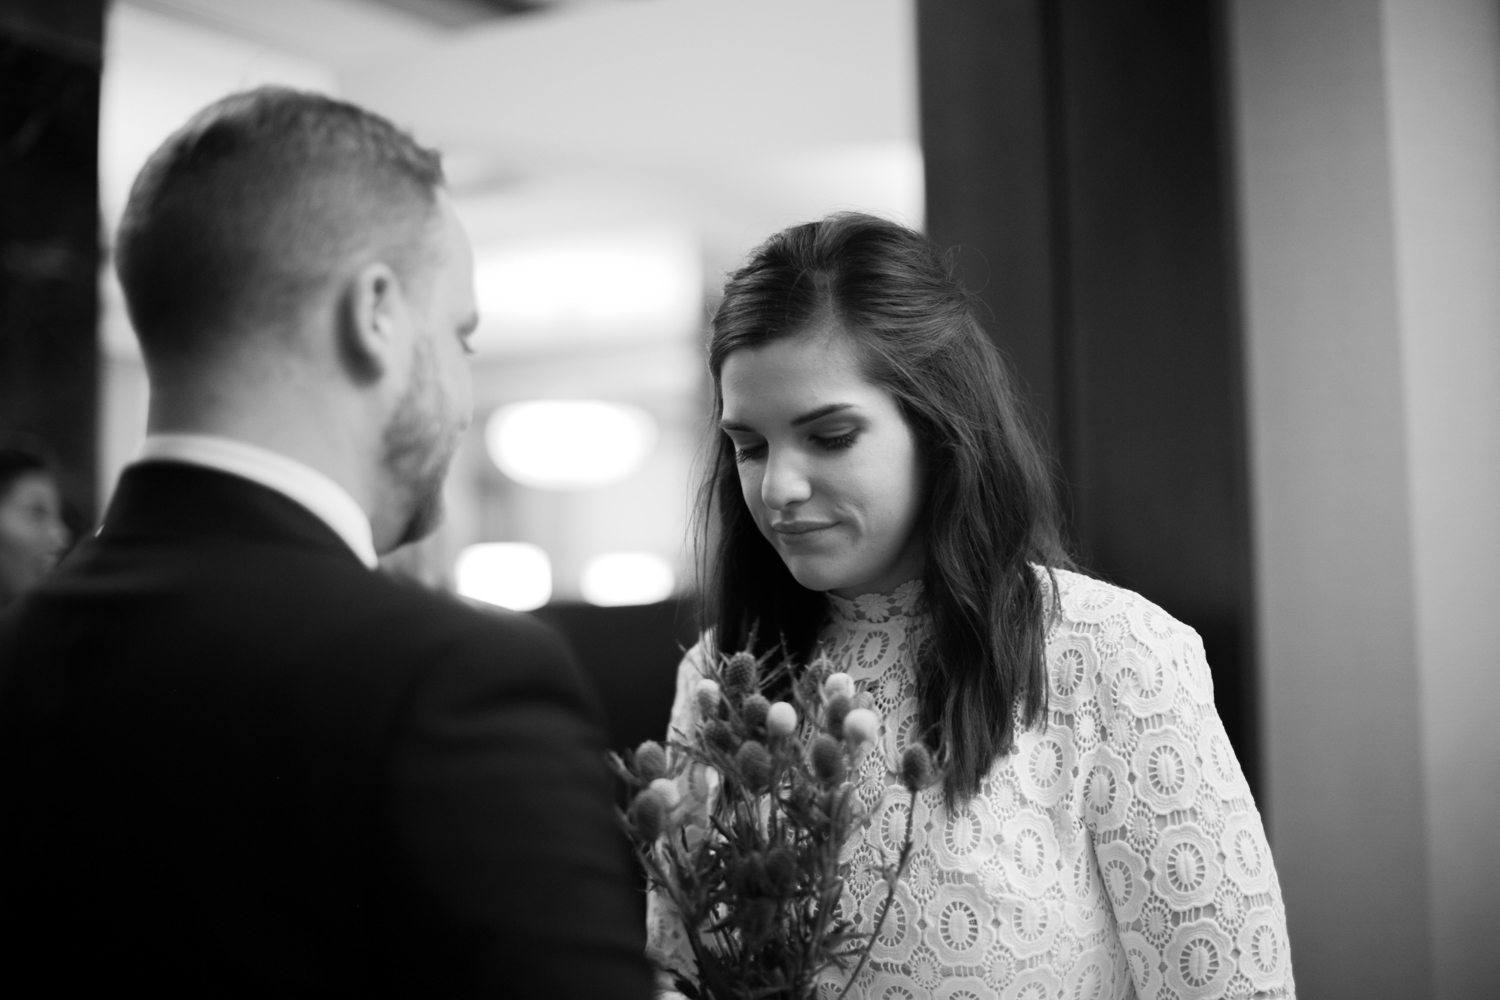 Black and white elopement photography